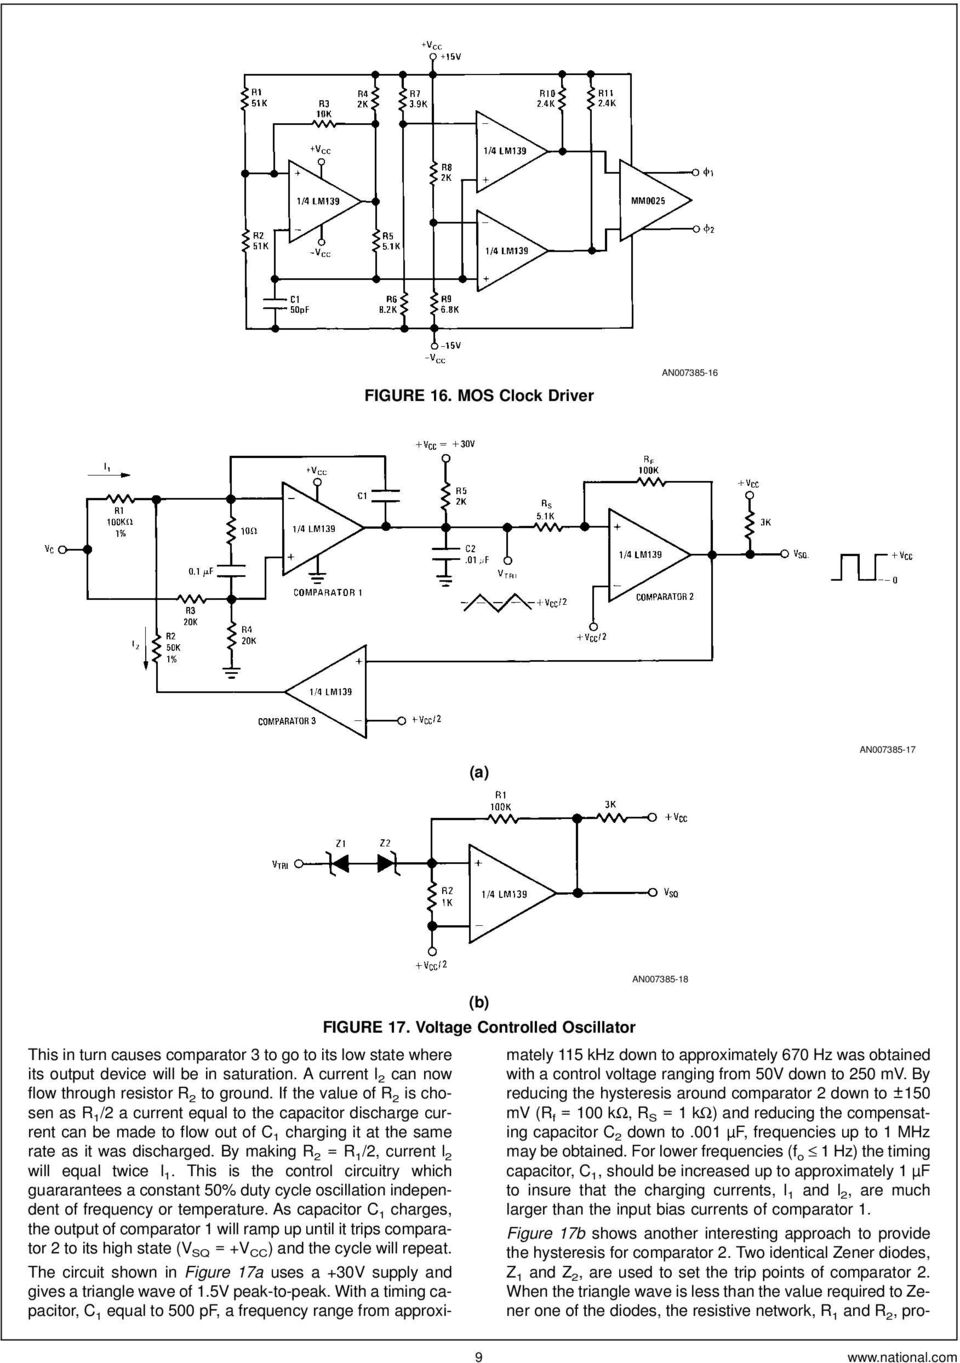 Lm139 Lm239 Lm339 A Quad Of Independently Functioning Comparators Pdf Adding Hysteresis To Comparator Circuit Basiccircuit Current L 2 Can Now Flow Through Resistor R Ground